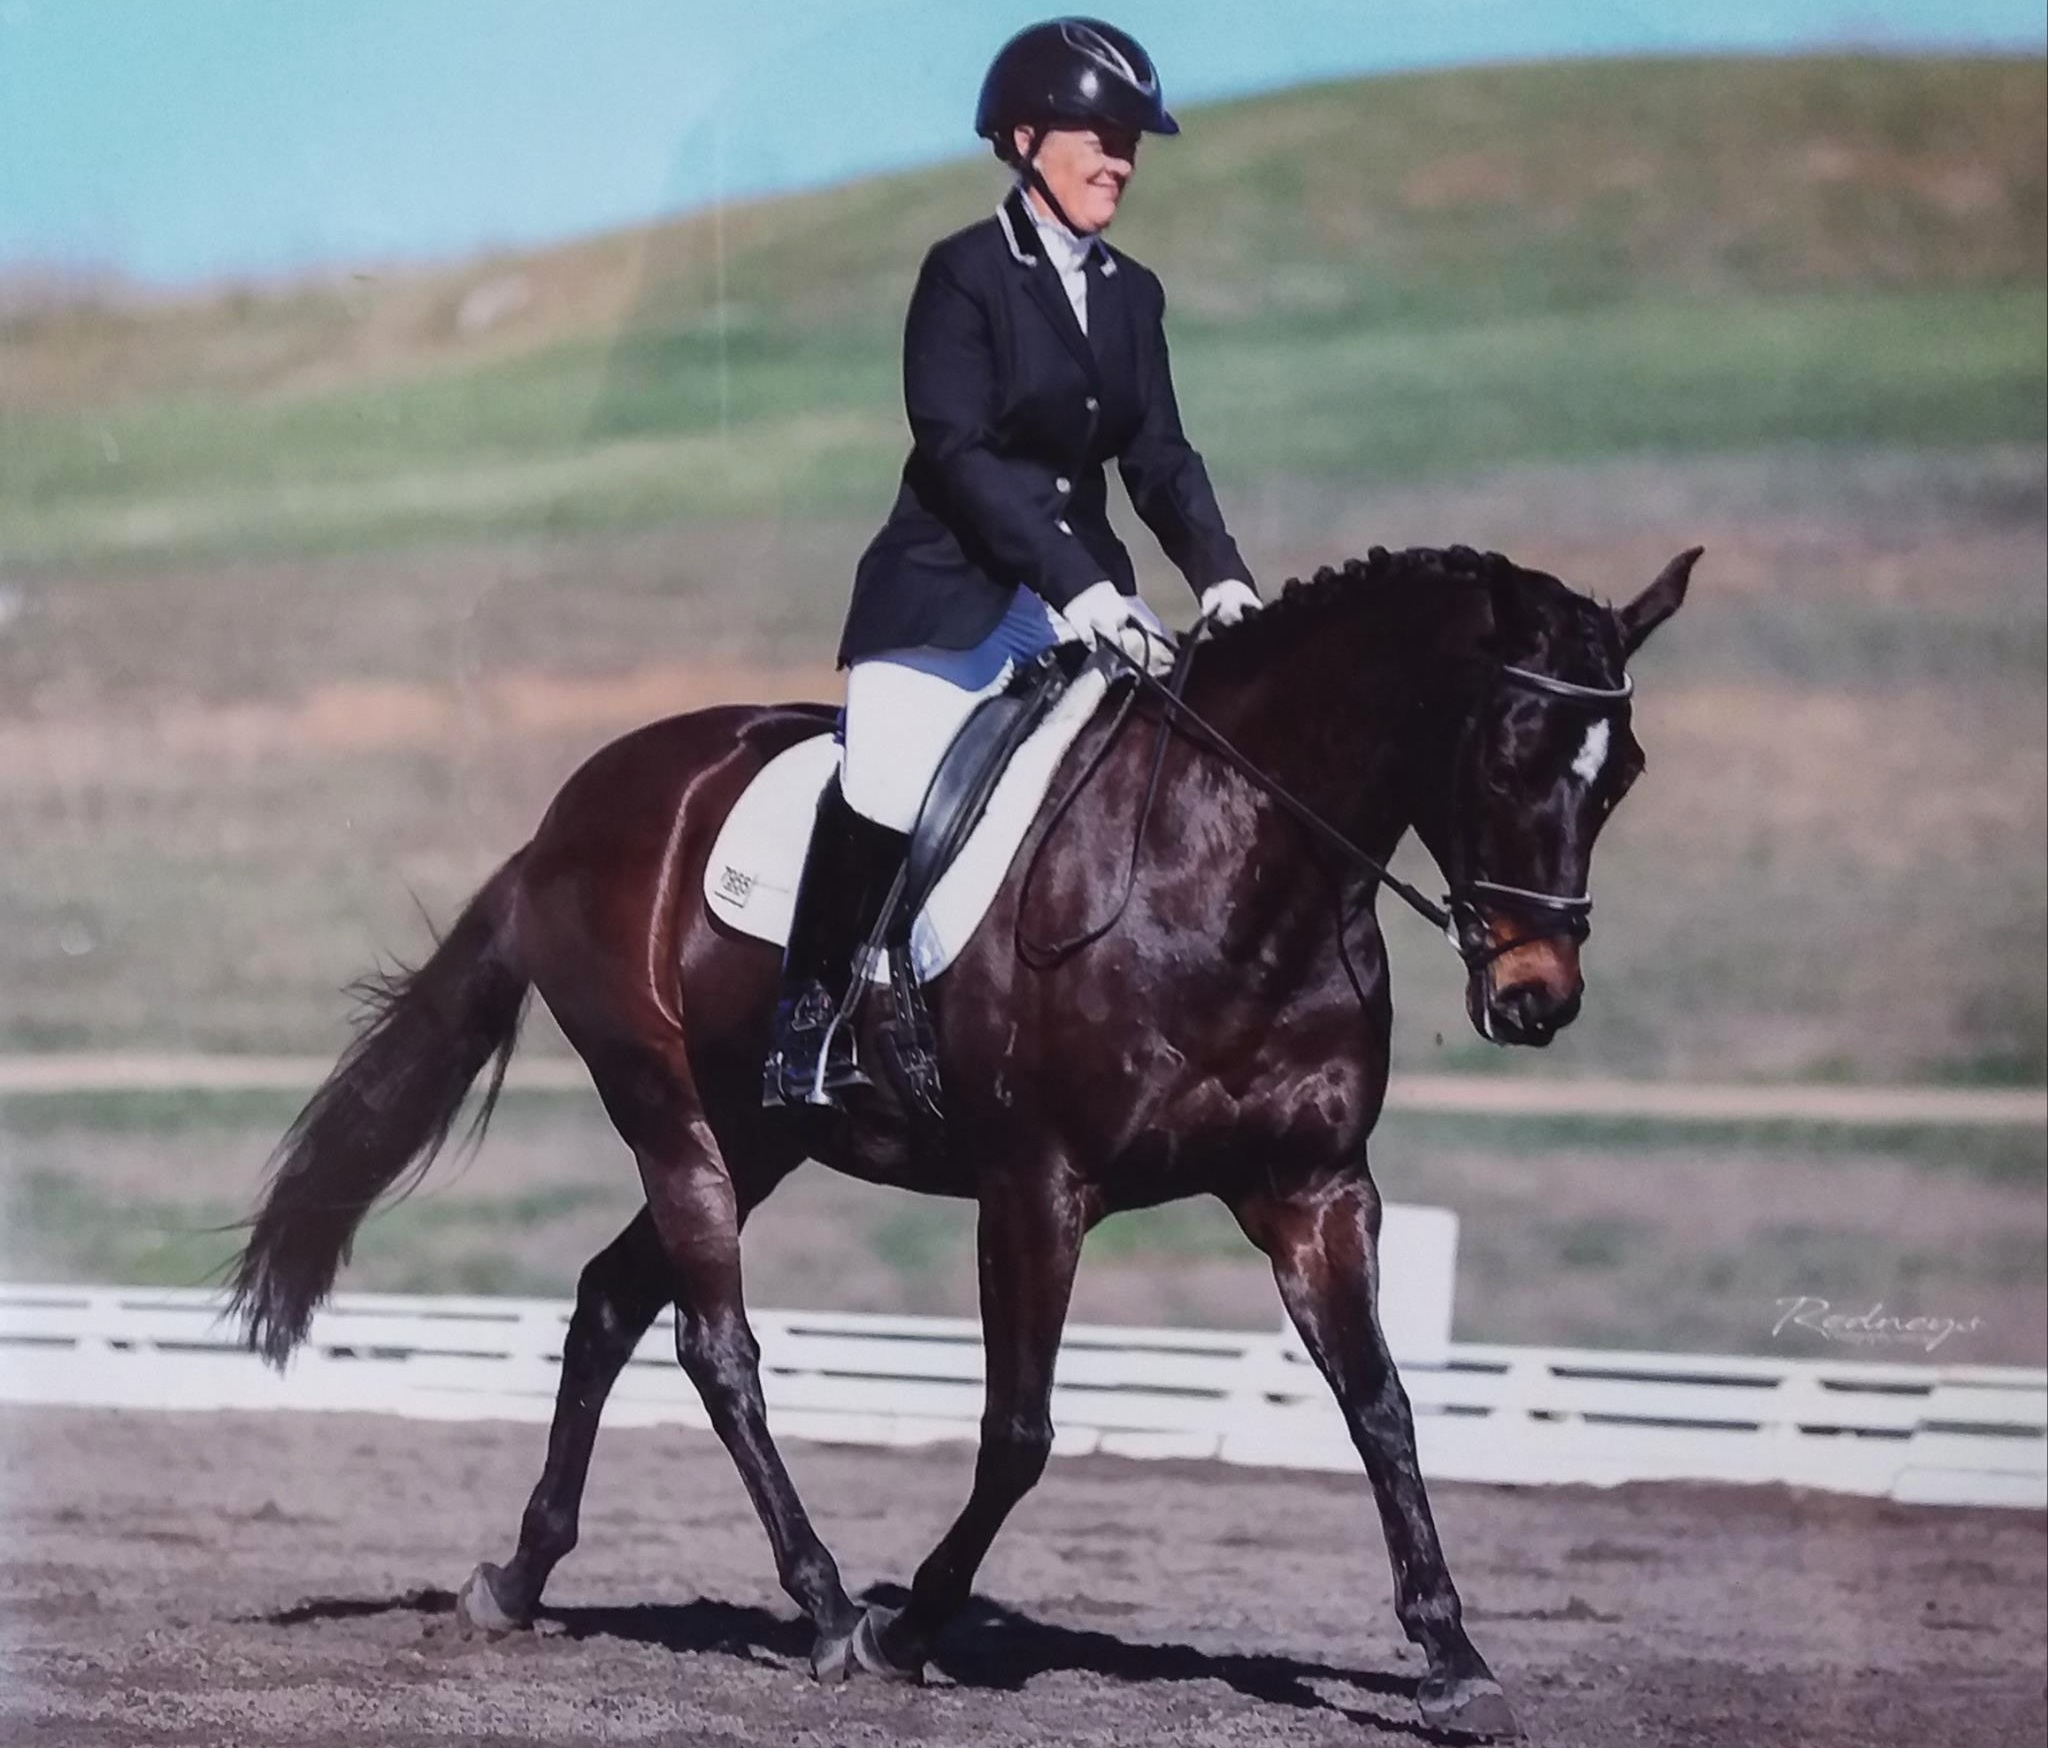 Jennifer wales Competing on Firstholm instyle at Sydney International Equestrian Centre